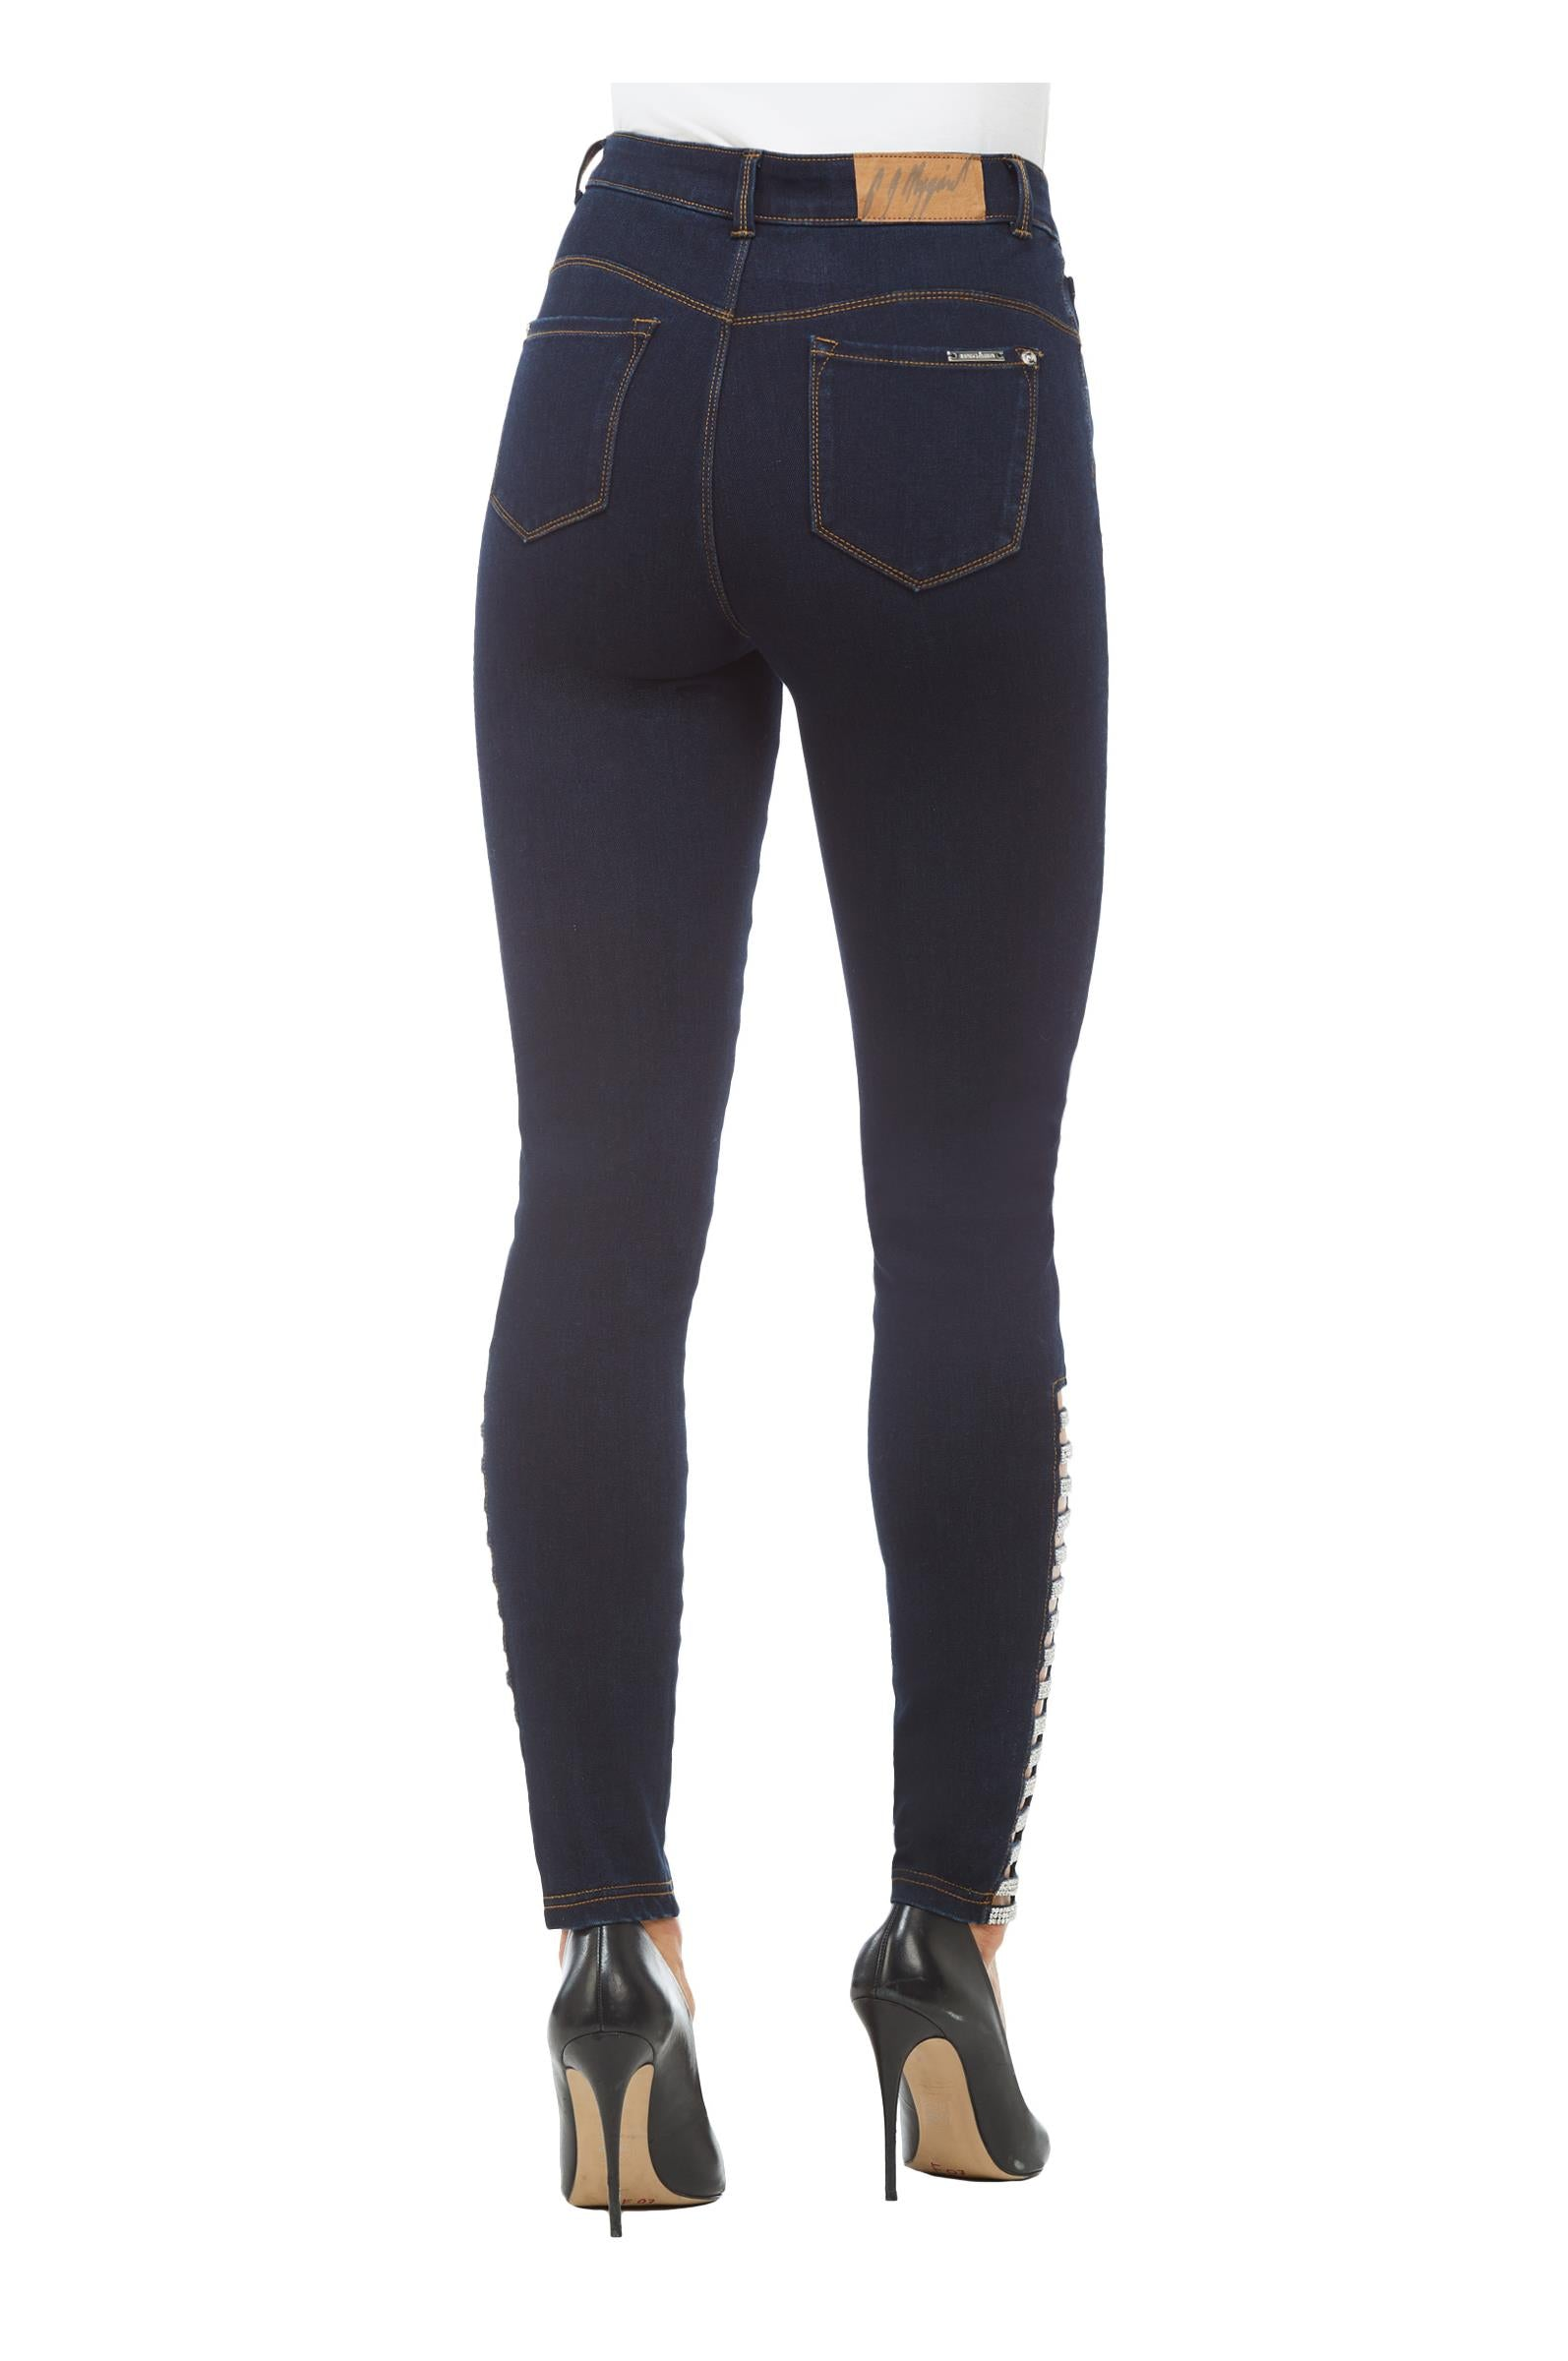 Back view woman wearing Peter Nygard denim skinny jeans with side rhinestone ladder at hemline